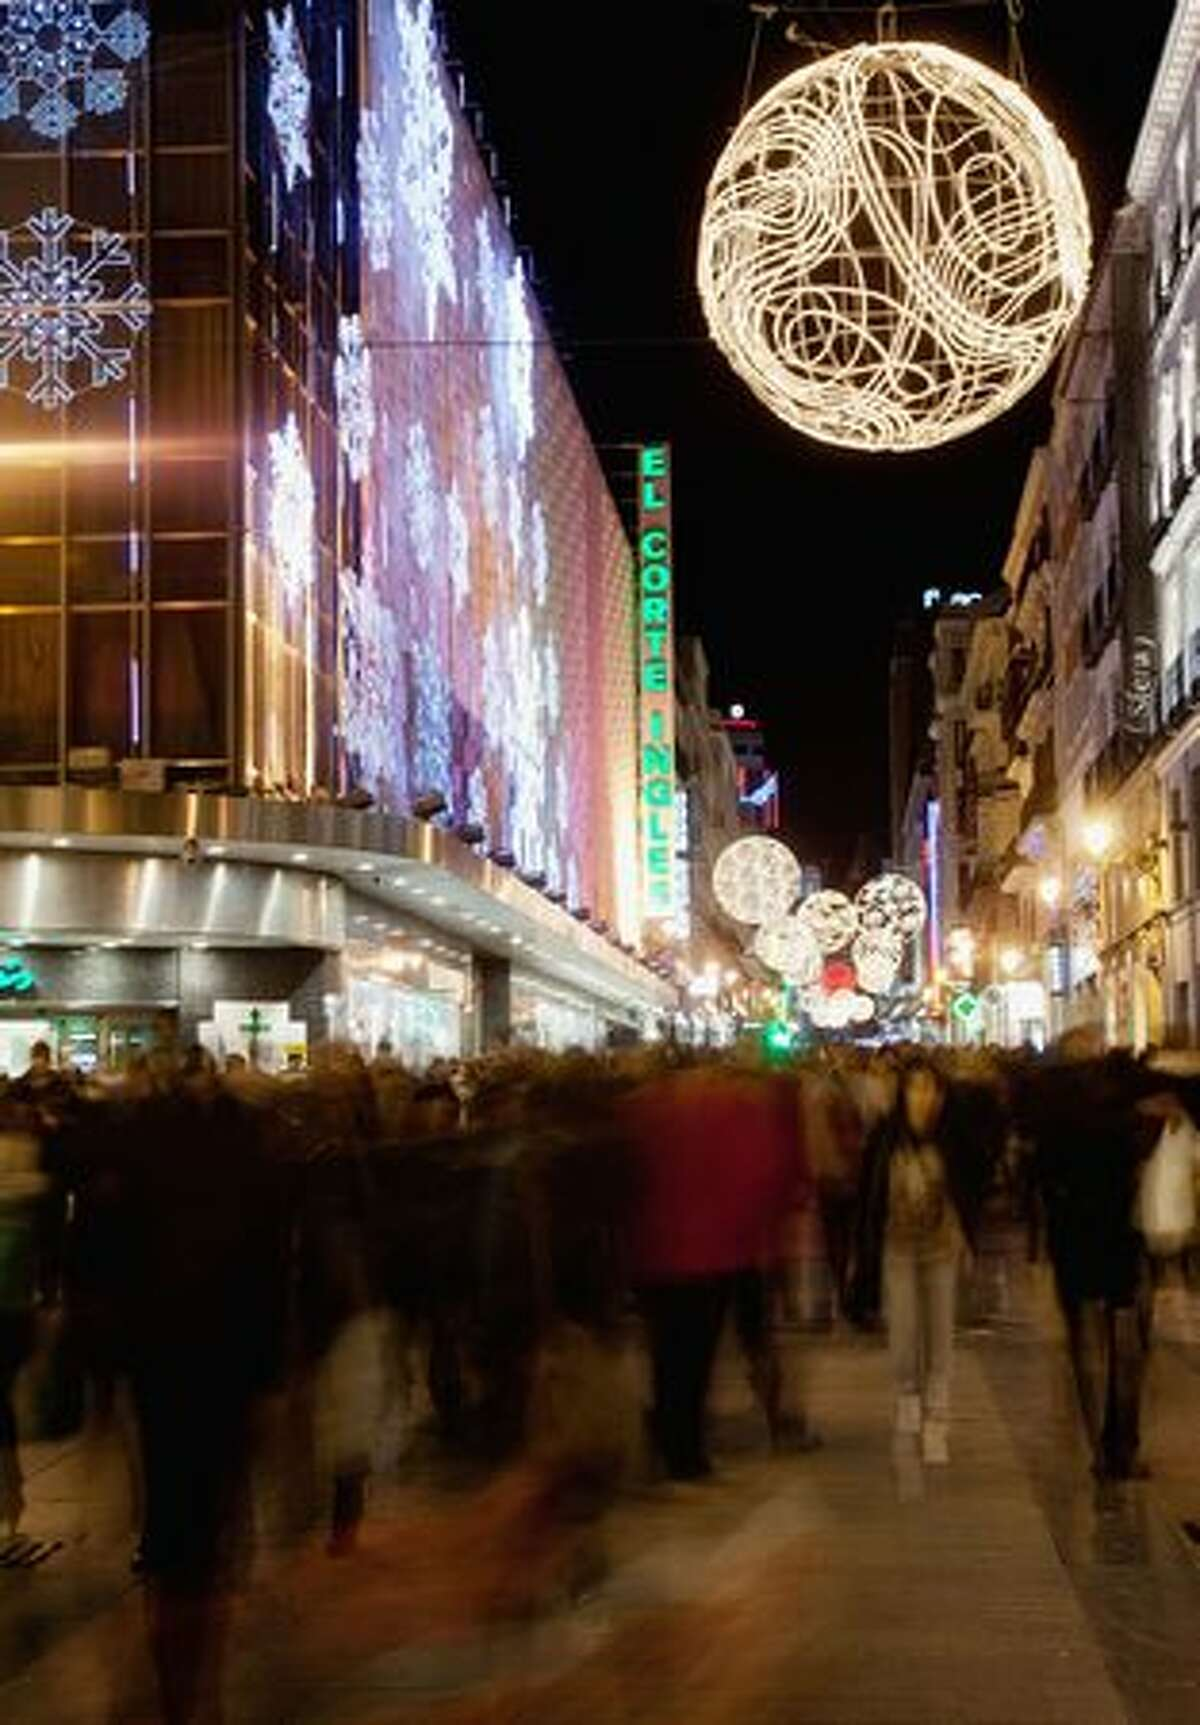 Christmas lights illuminate the calle de Preciados in Madrid, Spain.